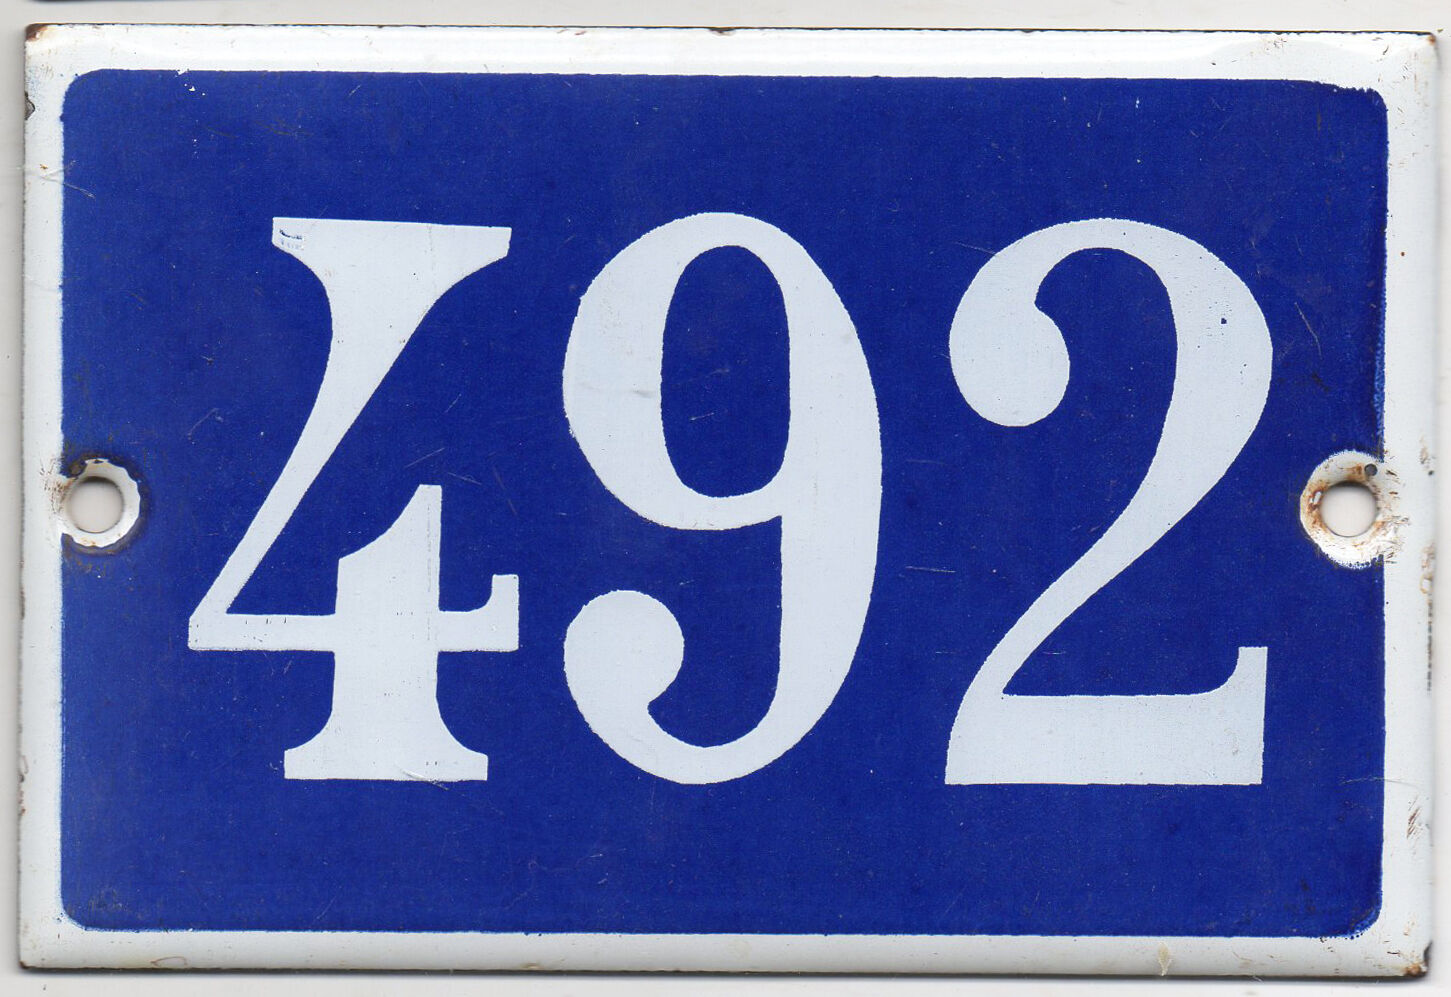 Old Blau French house number 492 door gate plate plaque enamel steel metal sign